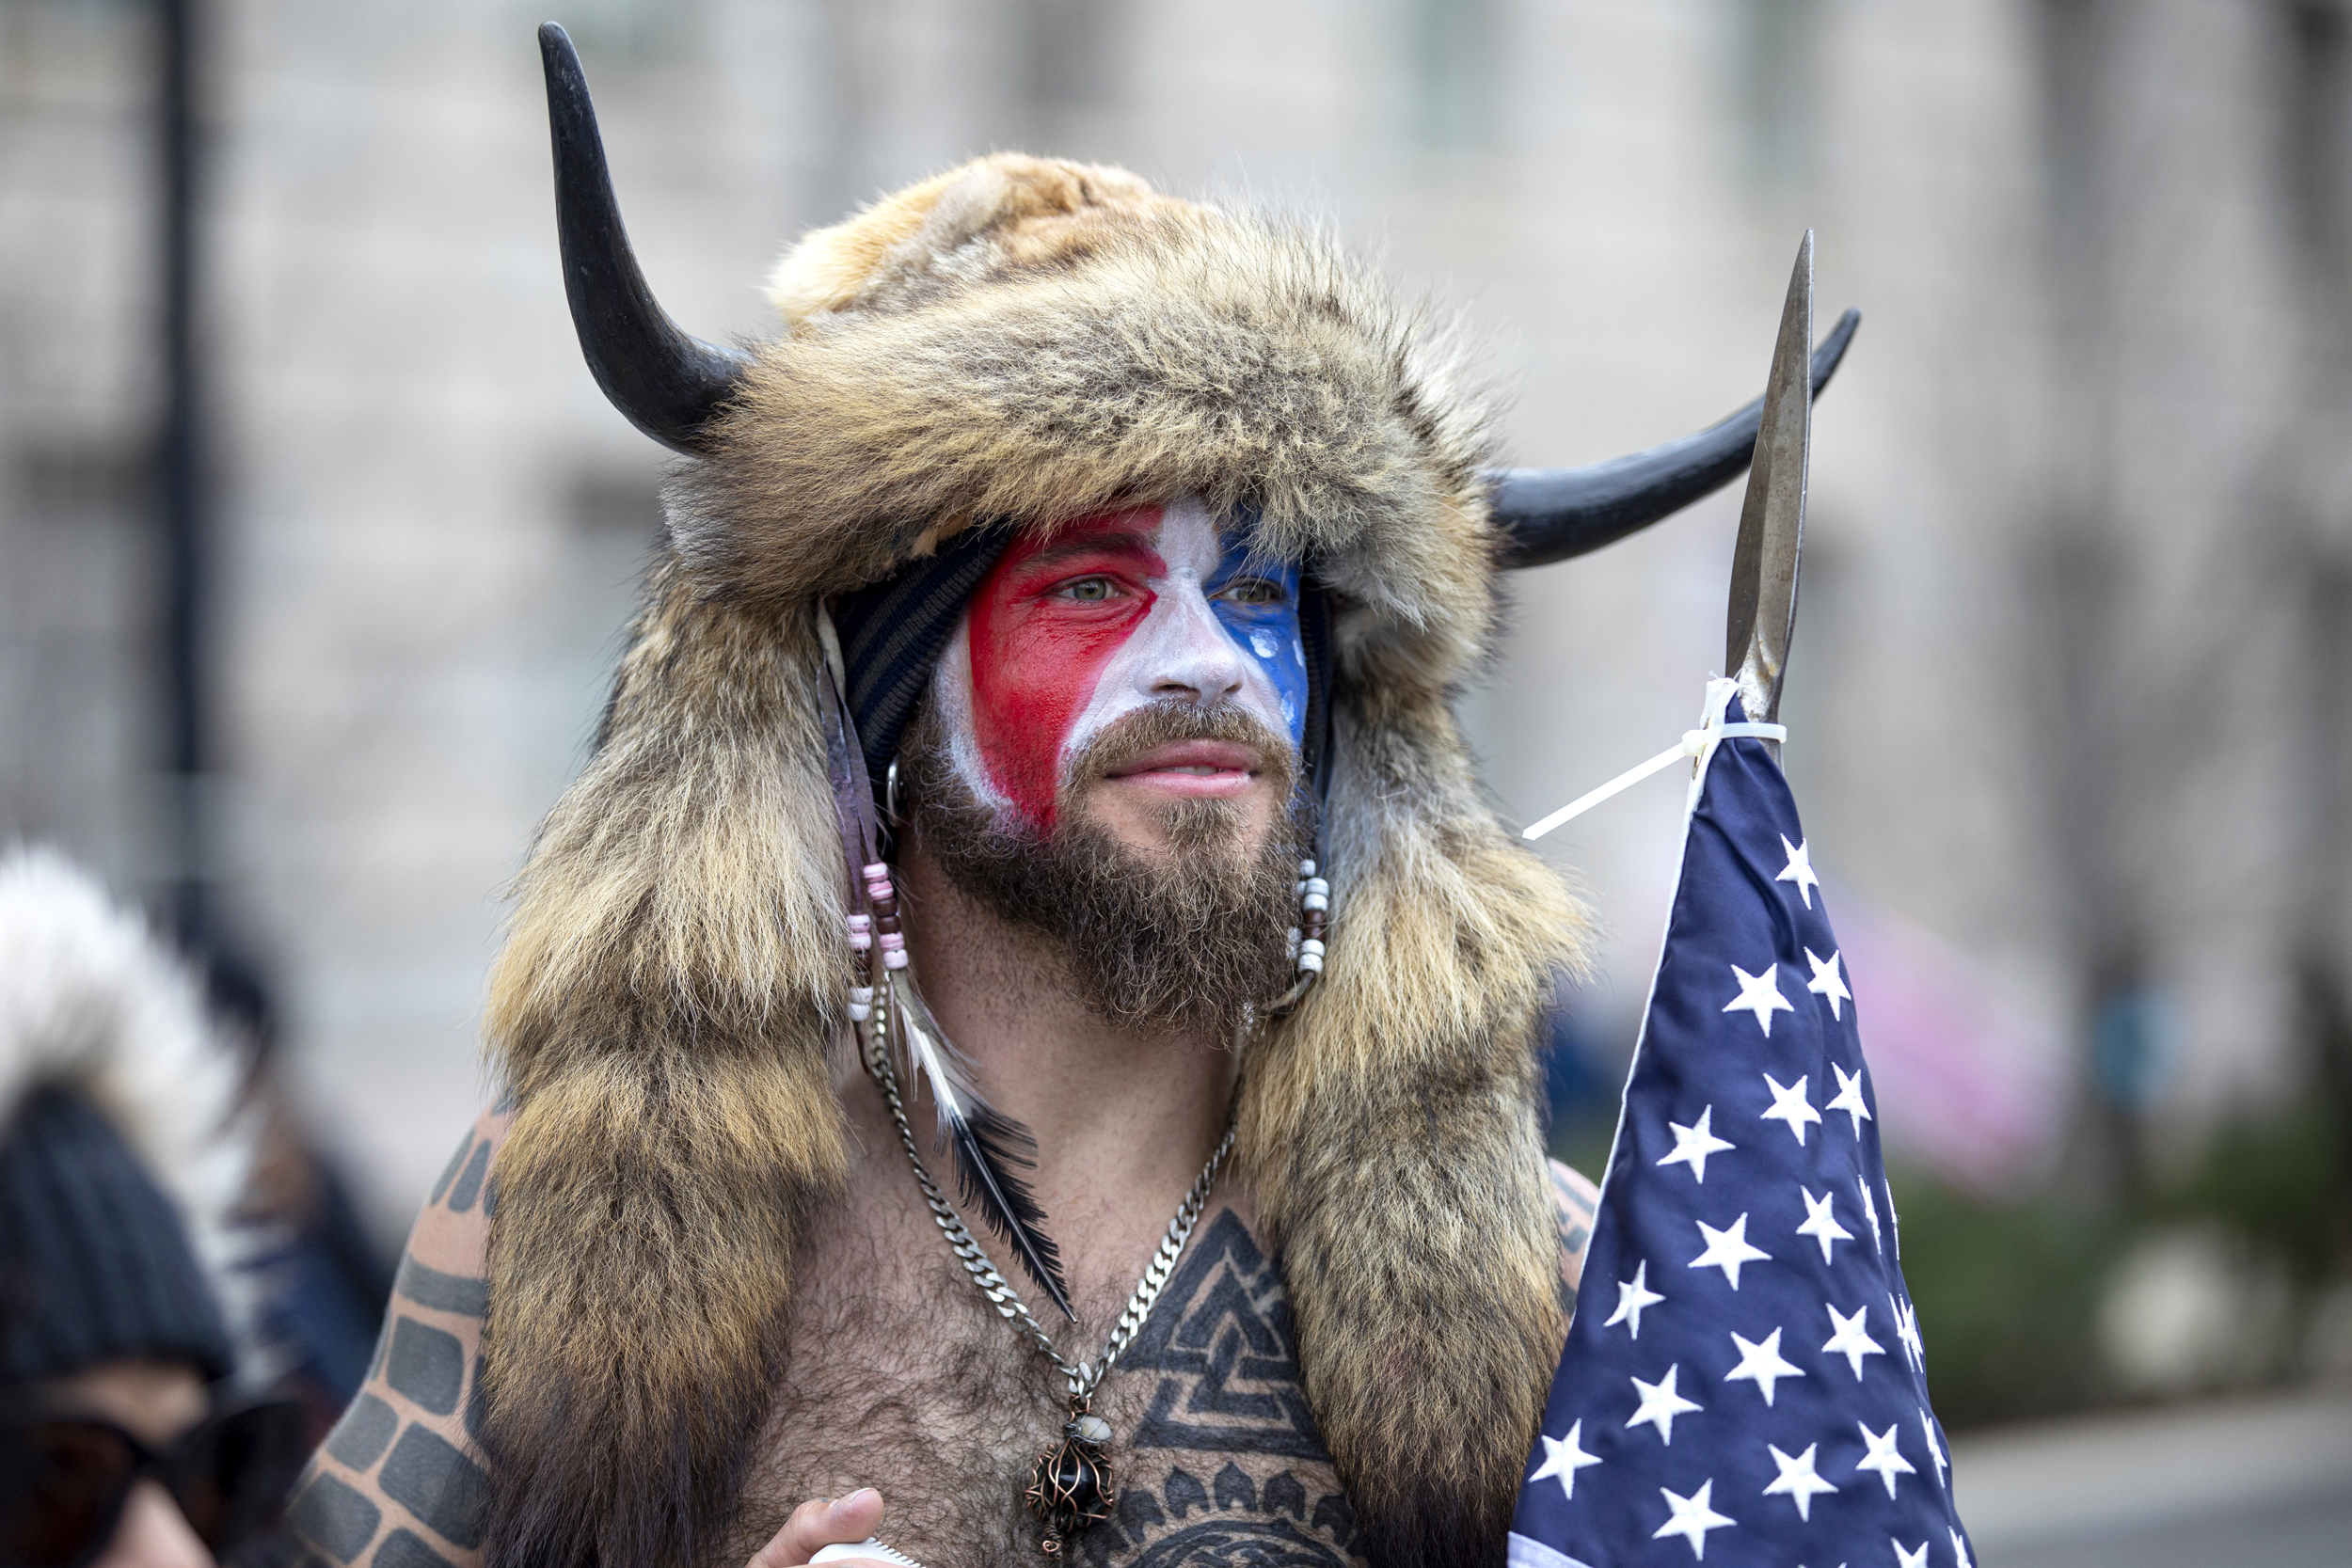 'QAnon Shaman,' Capitol rioter who wore horns, pleads guilty